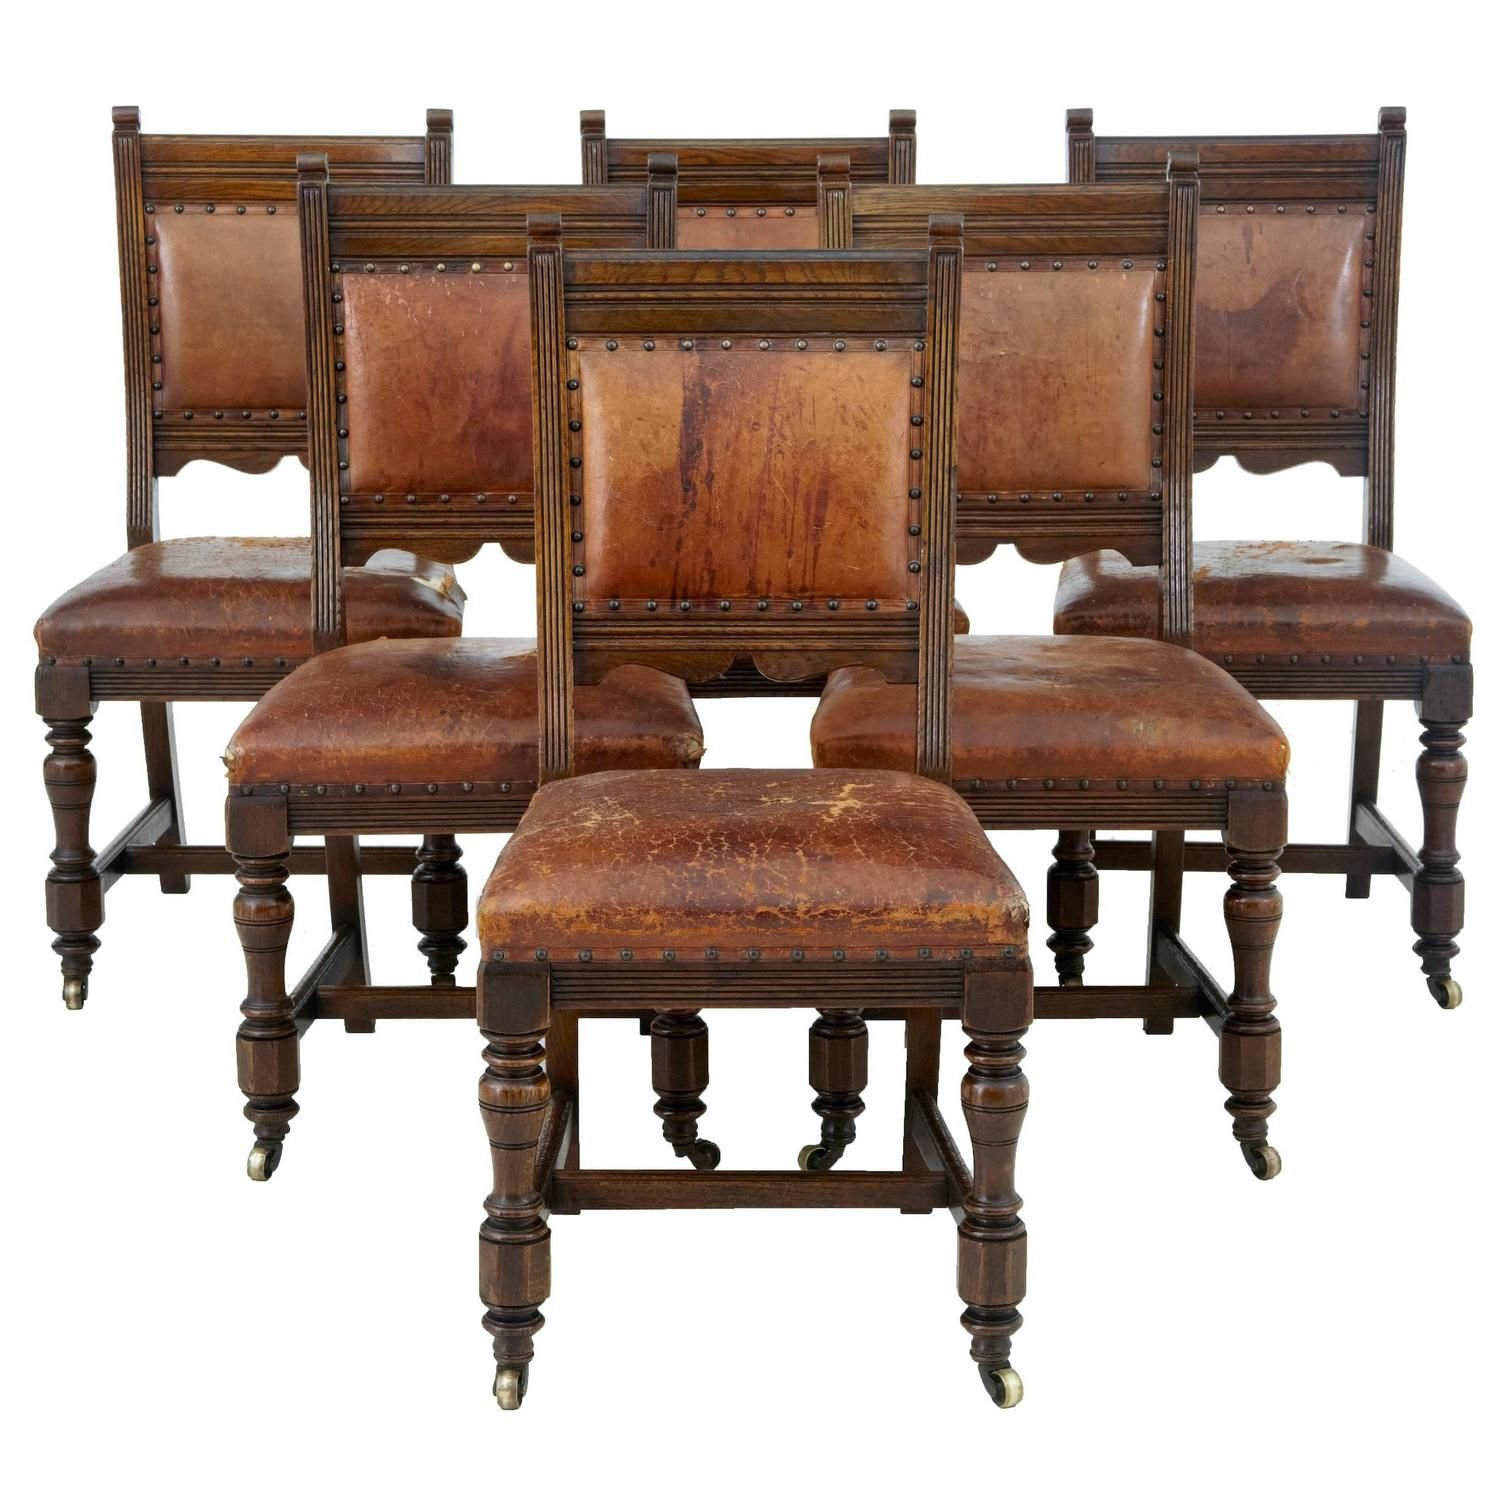 Set of Six 19th Century Carved Oak and Leather Dining